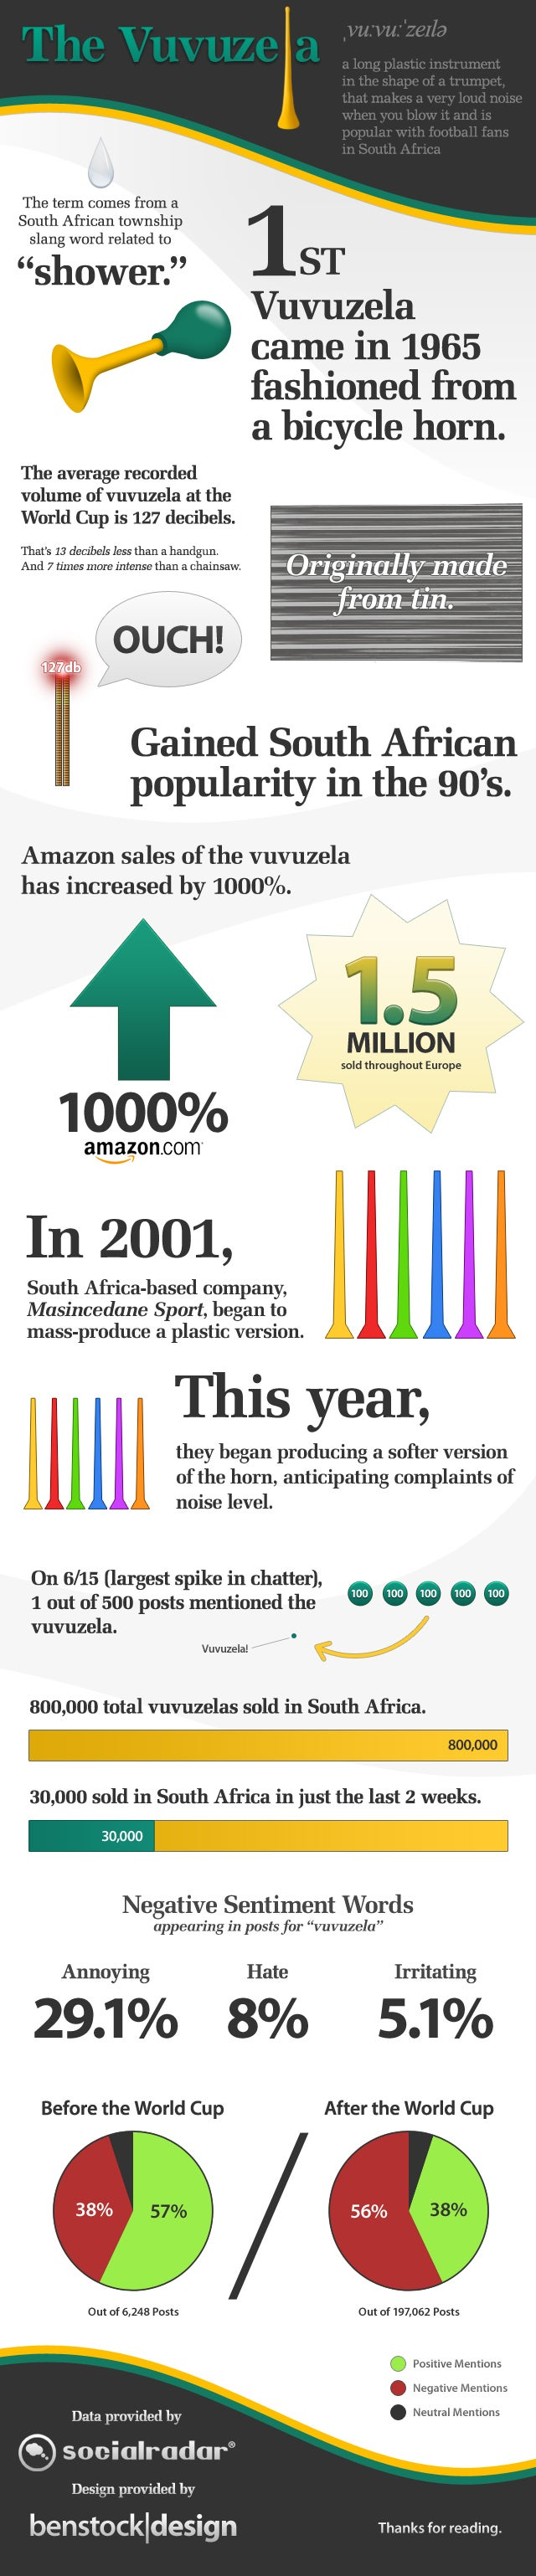 Vuvuzela Infographic Goes Behind the BZZZZZZZZ